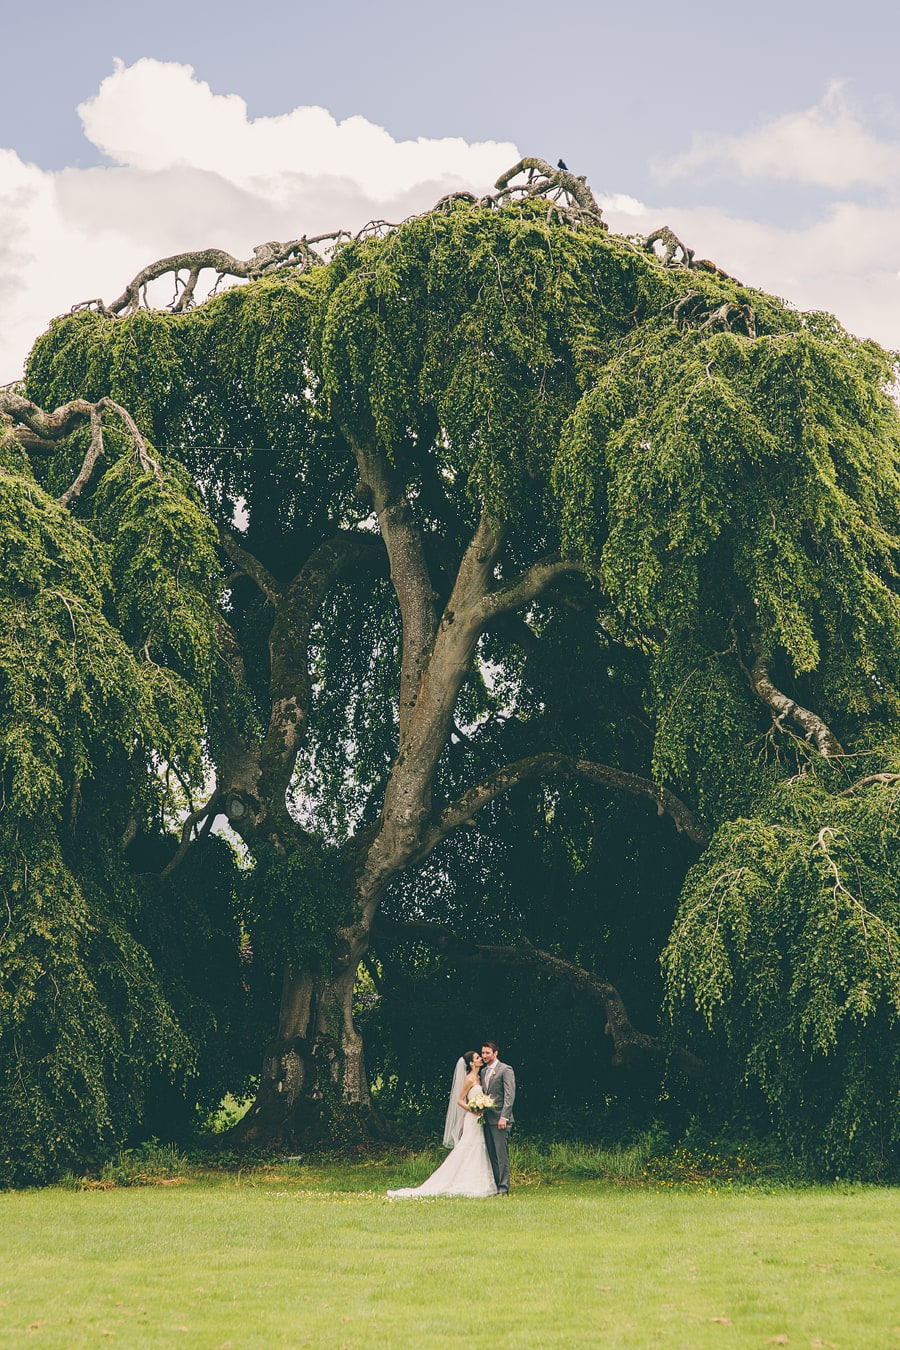 wedding portraits under a tree